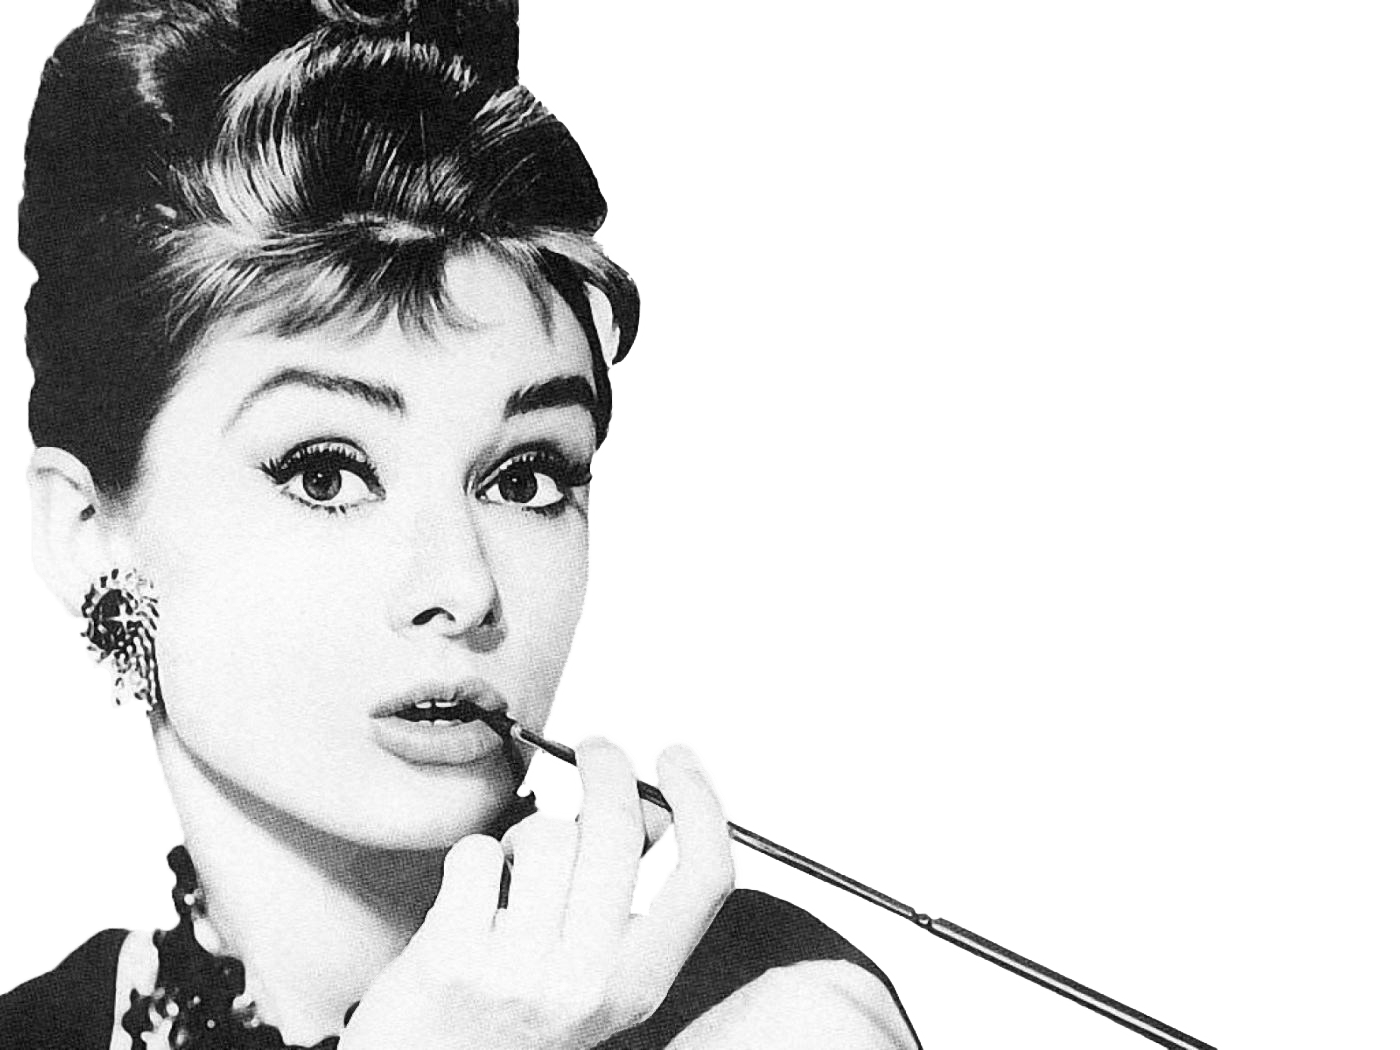 Audrey hepburn eyes clipart image royalty free library Audrey Hepburn Breakfast at Tiffany\'s Holly Golightly Actor Female ... image royalty free library